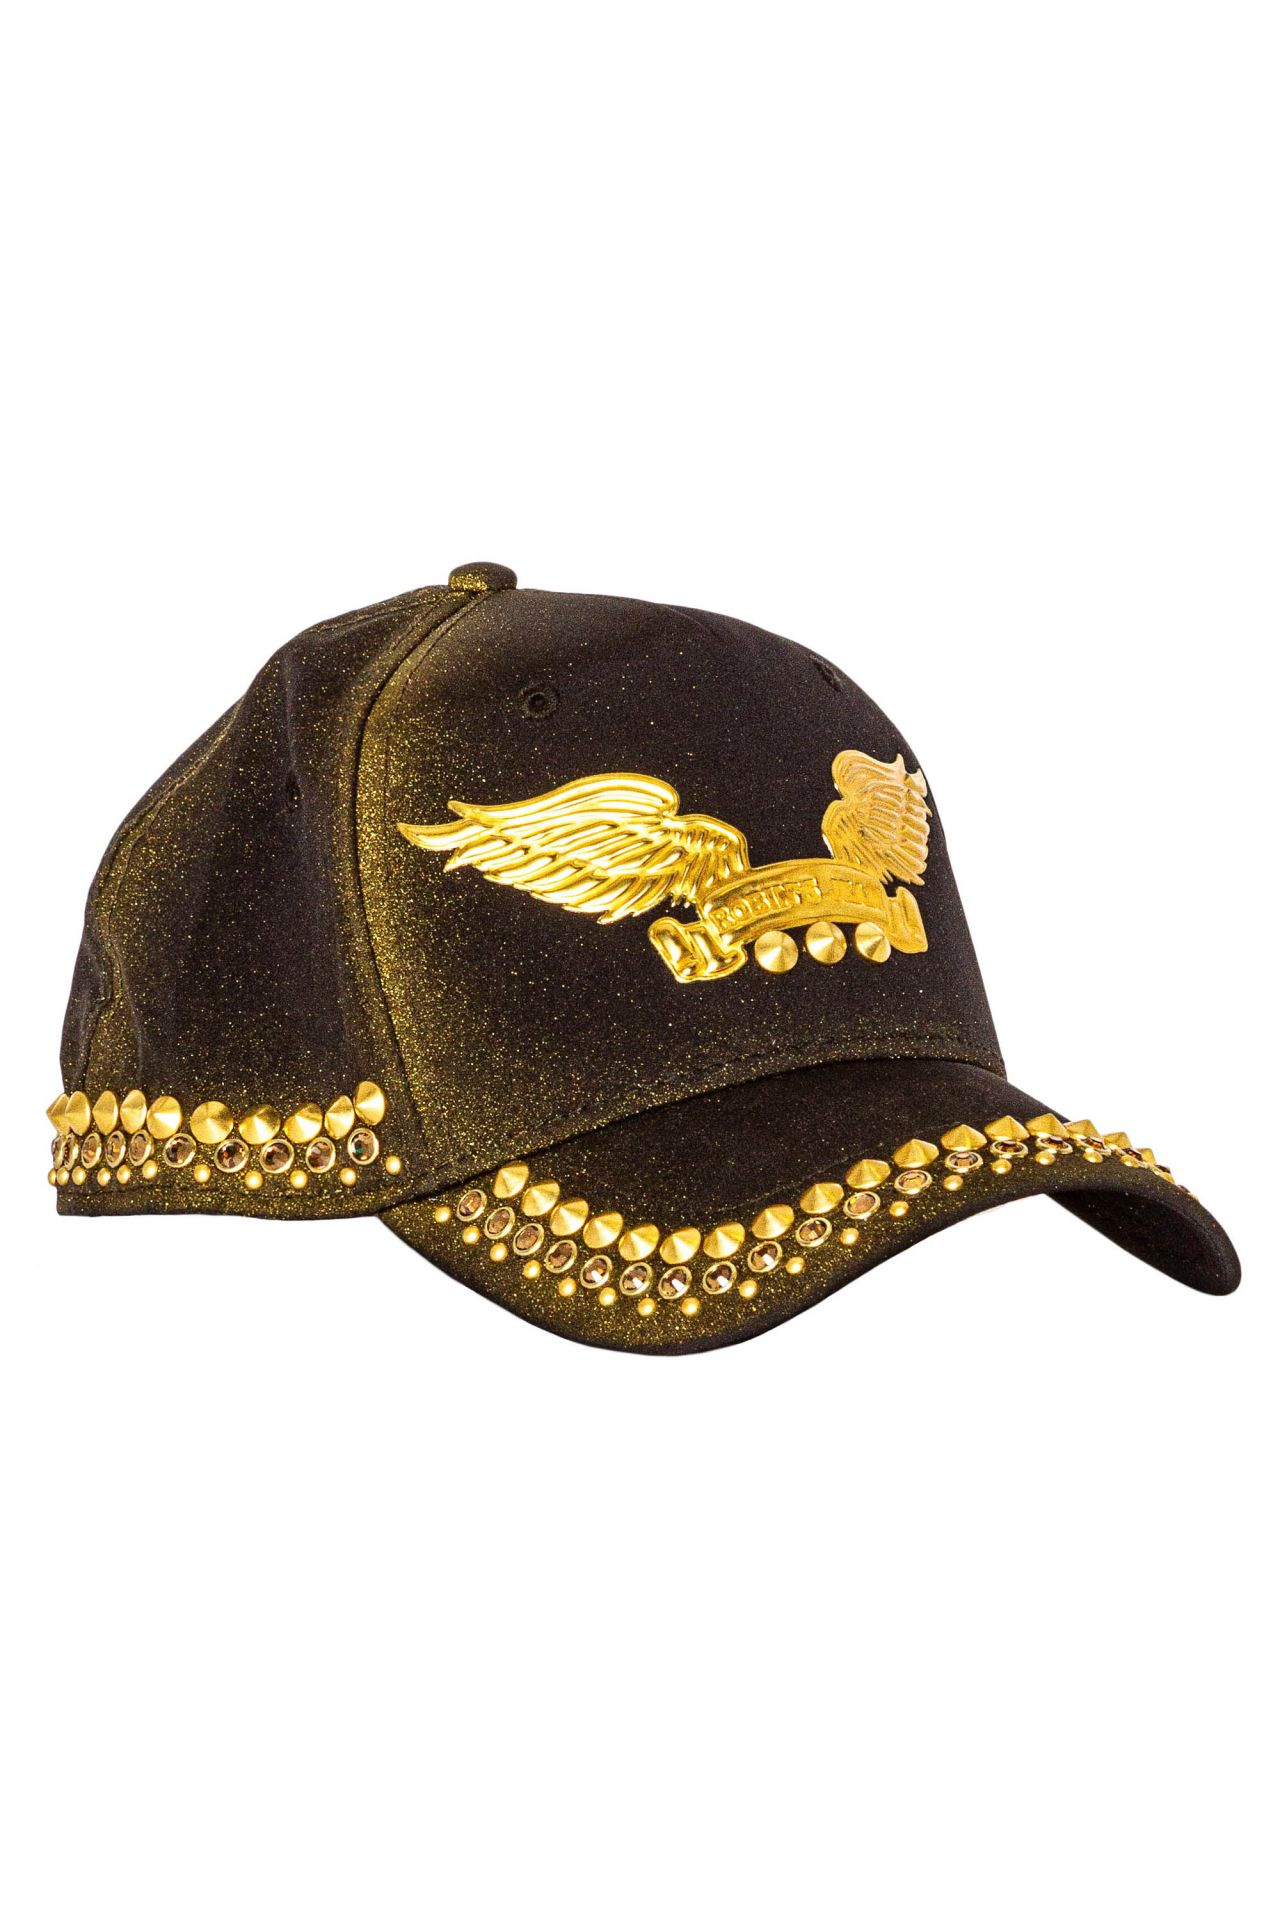 GOLD DUST CAP IN BLACK WITH GOLD WINGS AND CRYSTALS